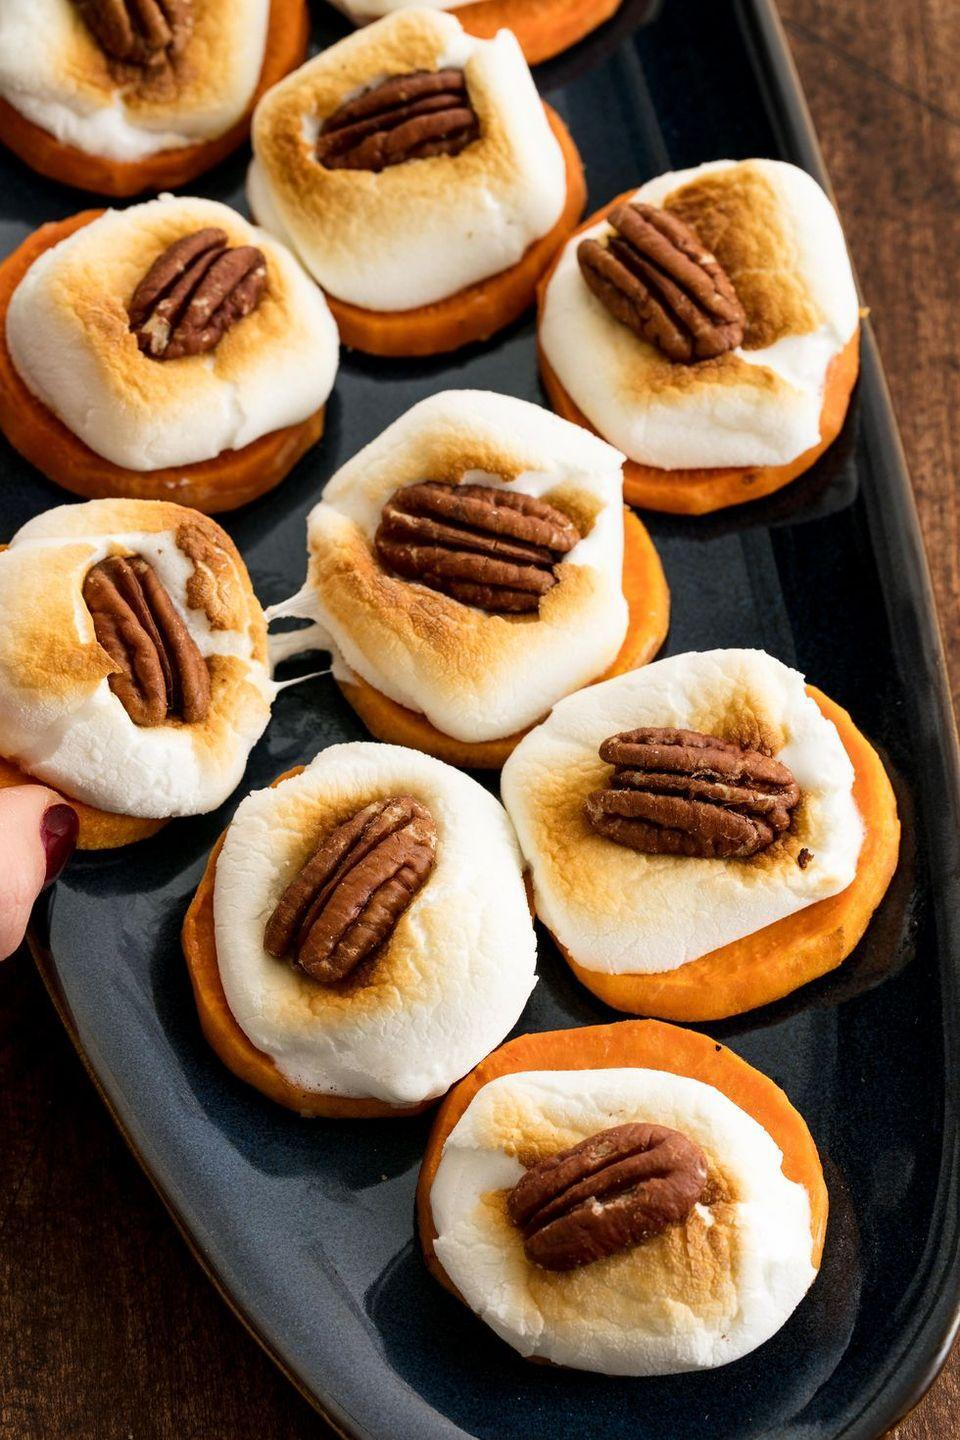 """<p>It's Christmas...start your meal off with something sweet.</p><p>Get the recipe from <a href=""""https://www.delish.com/cooking/recipe-ideas/recipes/a50000/sweet-potato-bites-recipe/"""" rel=""""nofollow noopener"""" target=""""_blank"""" data-ylk=""""slk:Delish"""" class=""""link rapid-noclick-resp"""">Delish</a>.</p>"""